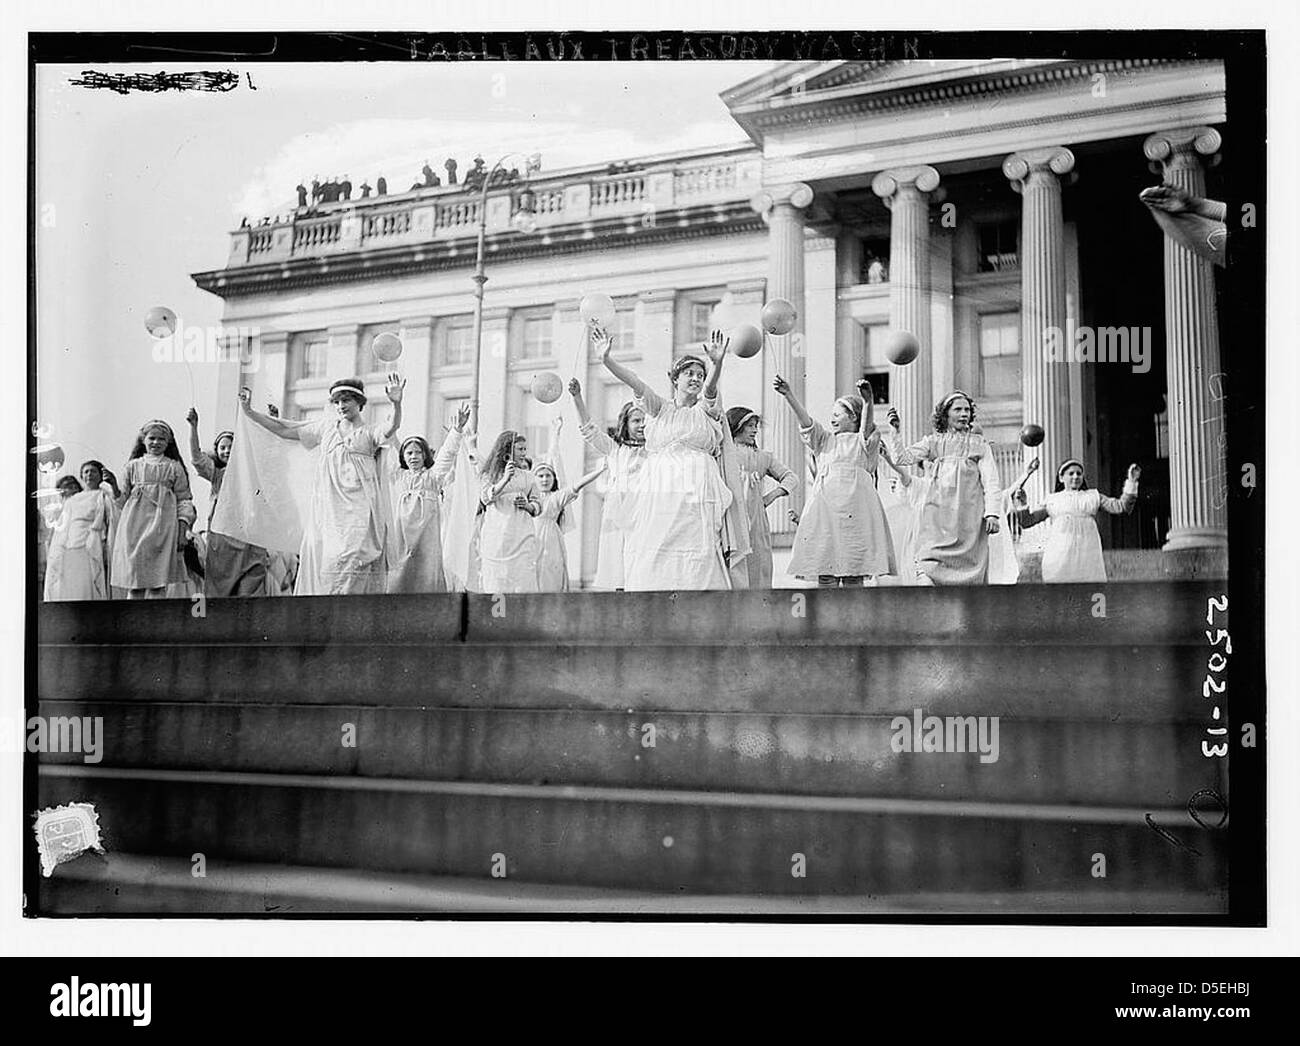 Tableaux, Treasury Wash., D.C. (Suff. Pageant) (LOC) - Stock Image